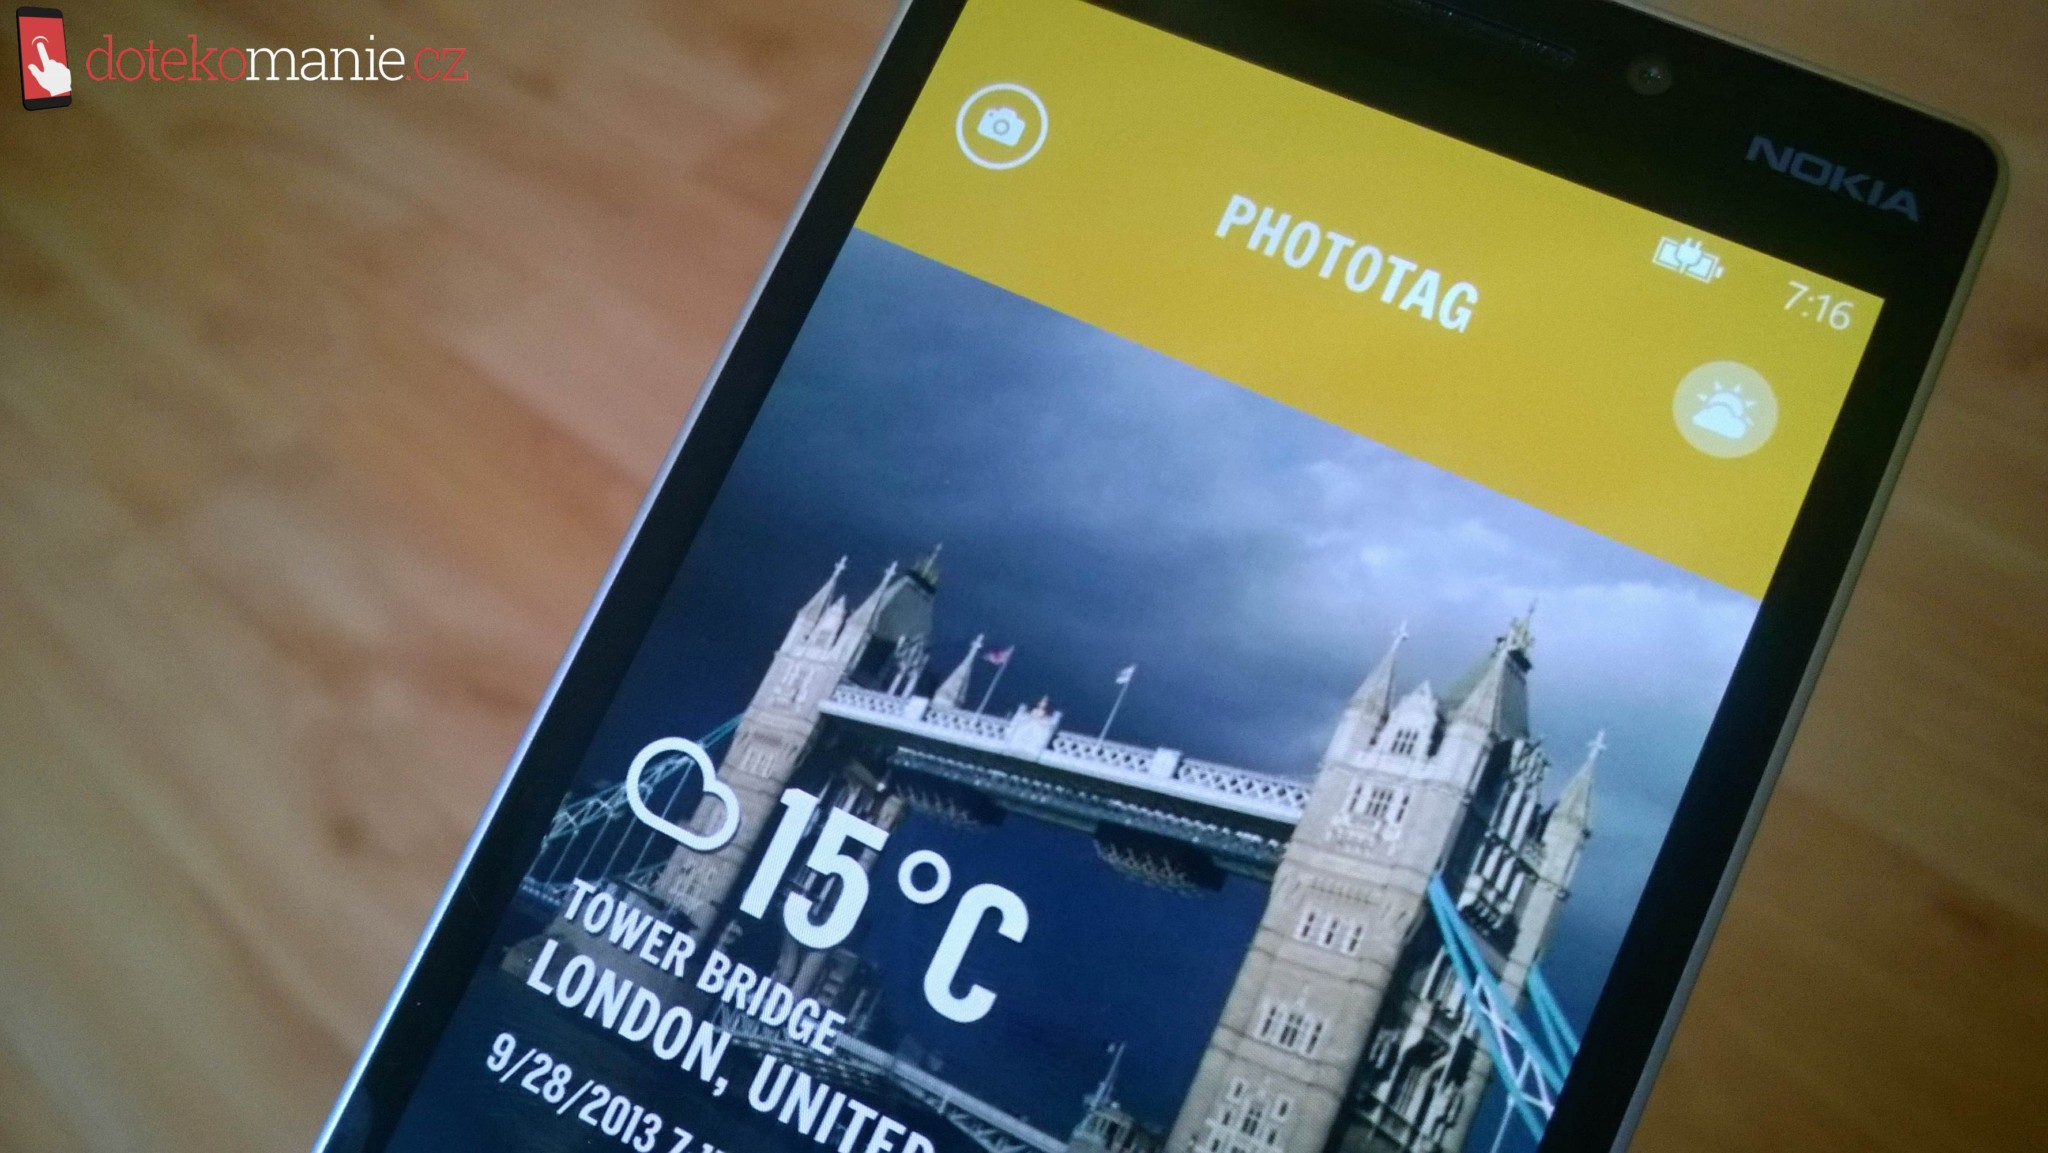 5 aplikací ze storu – upravujeme fotografie s Windows Phone